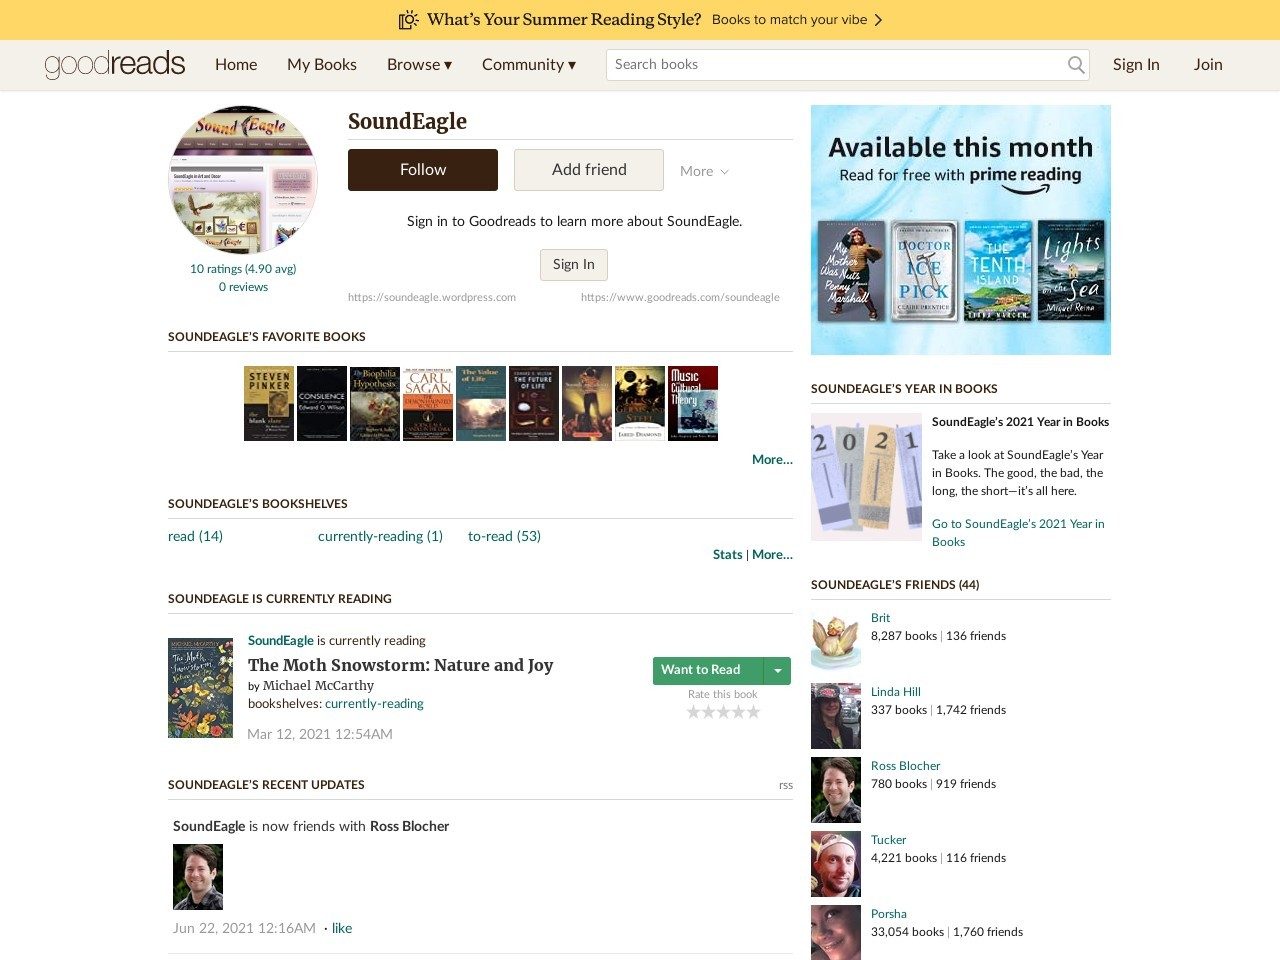 SoundEagle on GoodReads